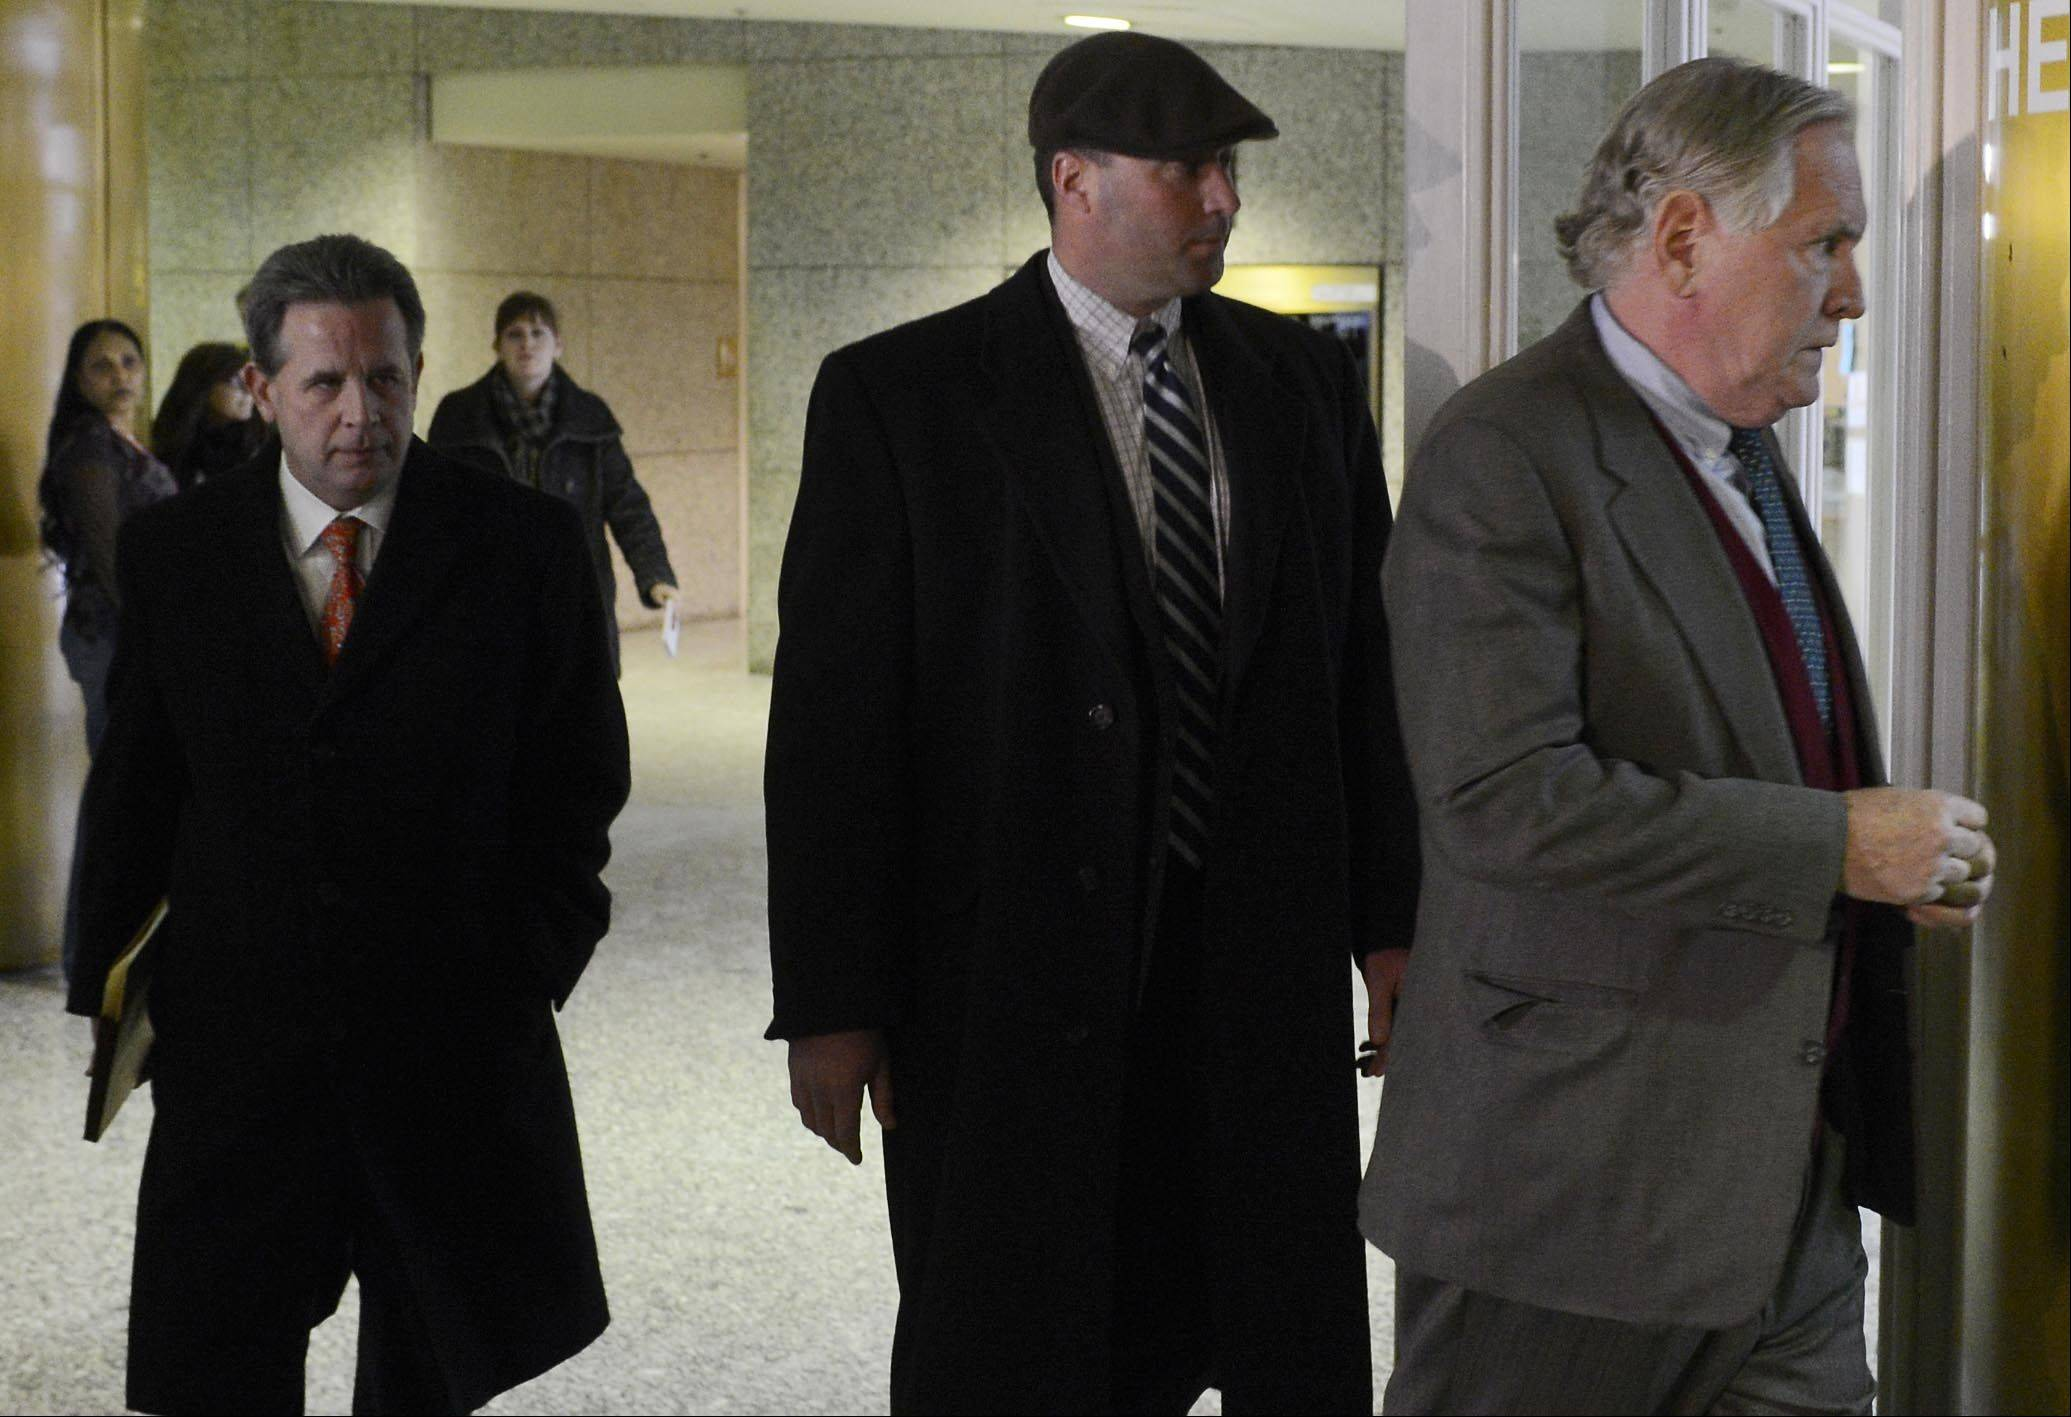 Richard Vanecko, middle, leaves the Rolling Meadows Courthouse Friday after pleading guilty to involuntary manslaughter in the death of David Koschman of Mount Prospect.